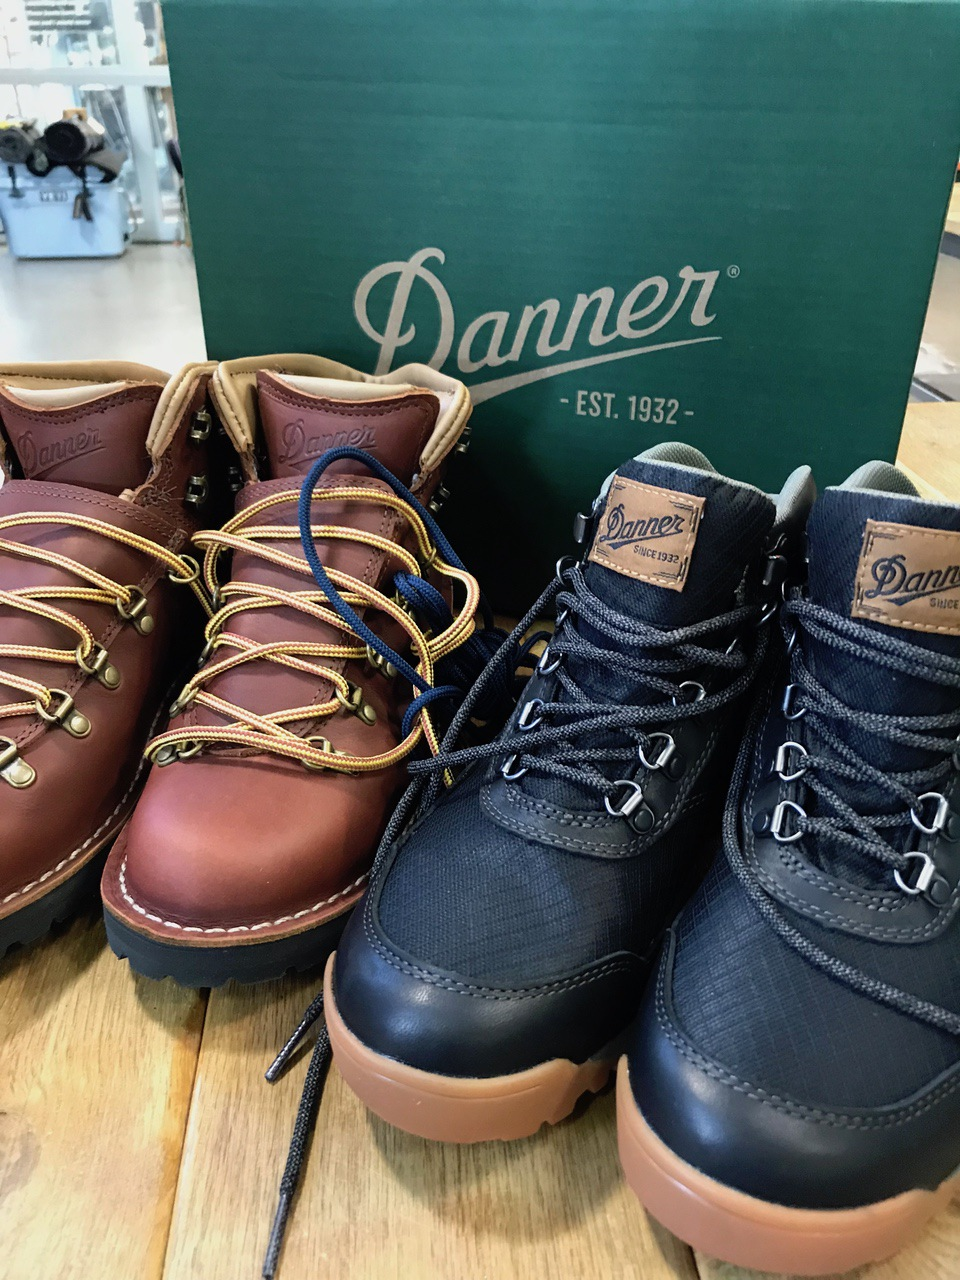 Photo Gallery Behind The Scenes At The Danner Boot